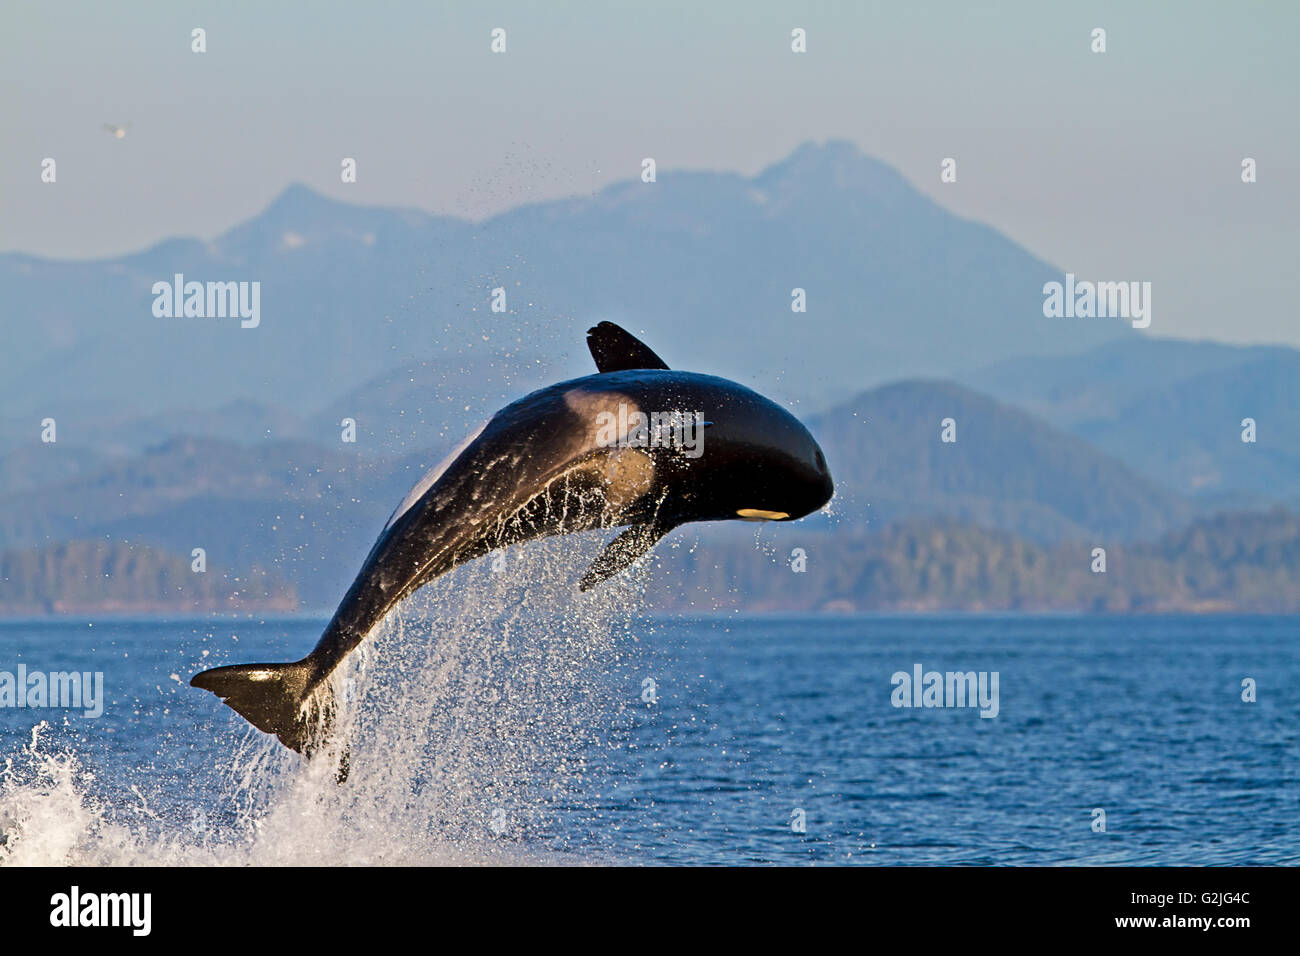 Transient killer whales (orca Orcinus orca T30's & T137's) after killing a sea lion off Malcolm Island - Stock Image